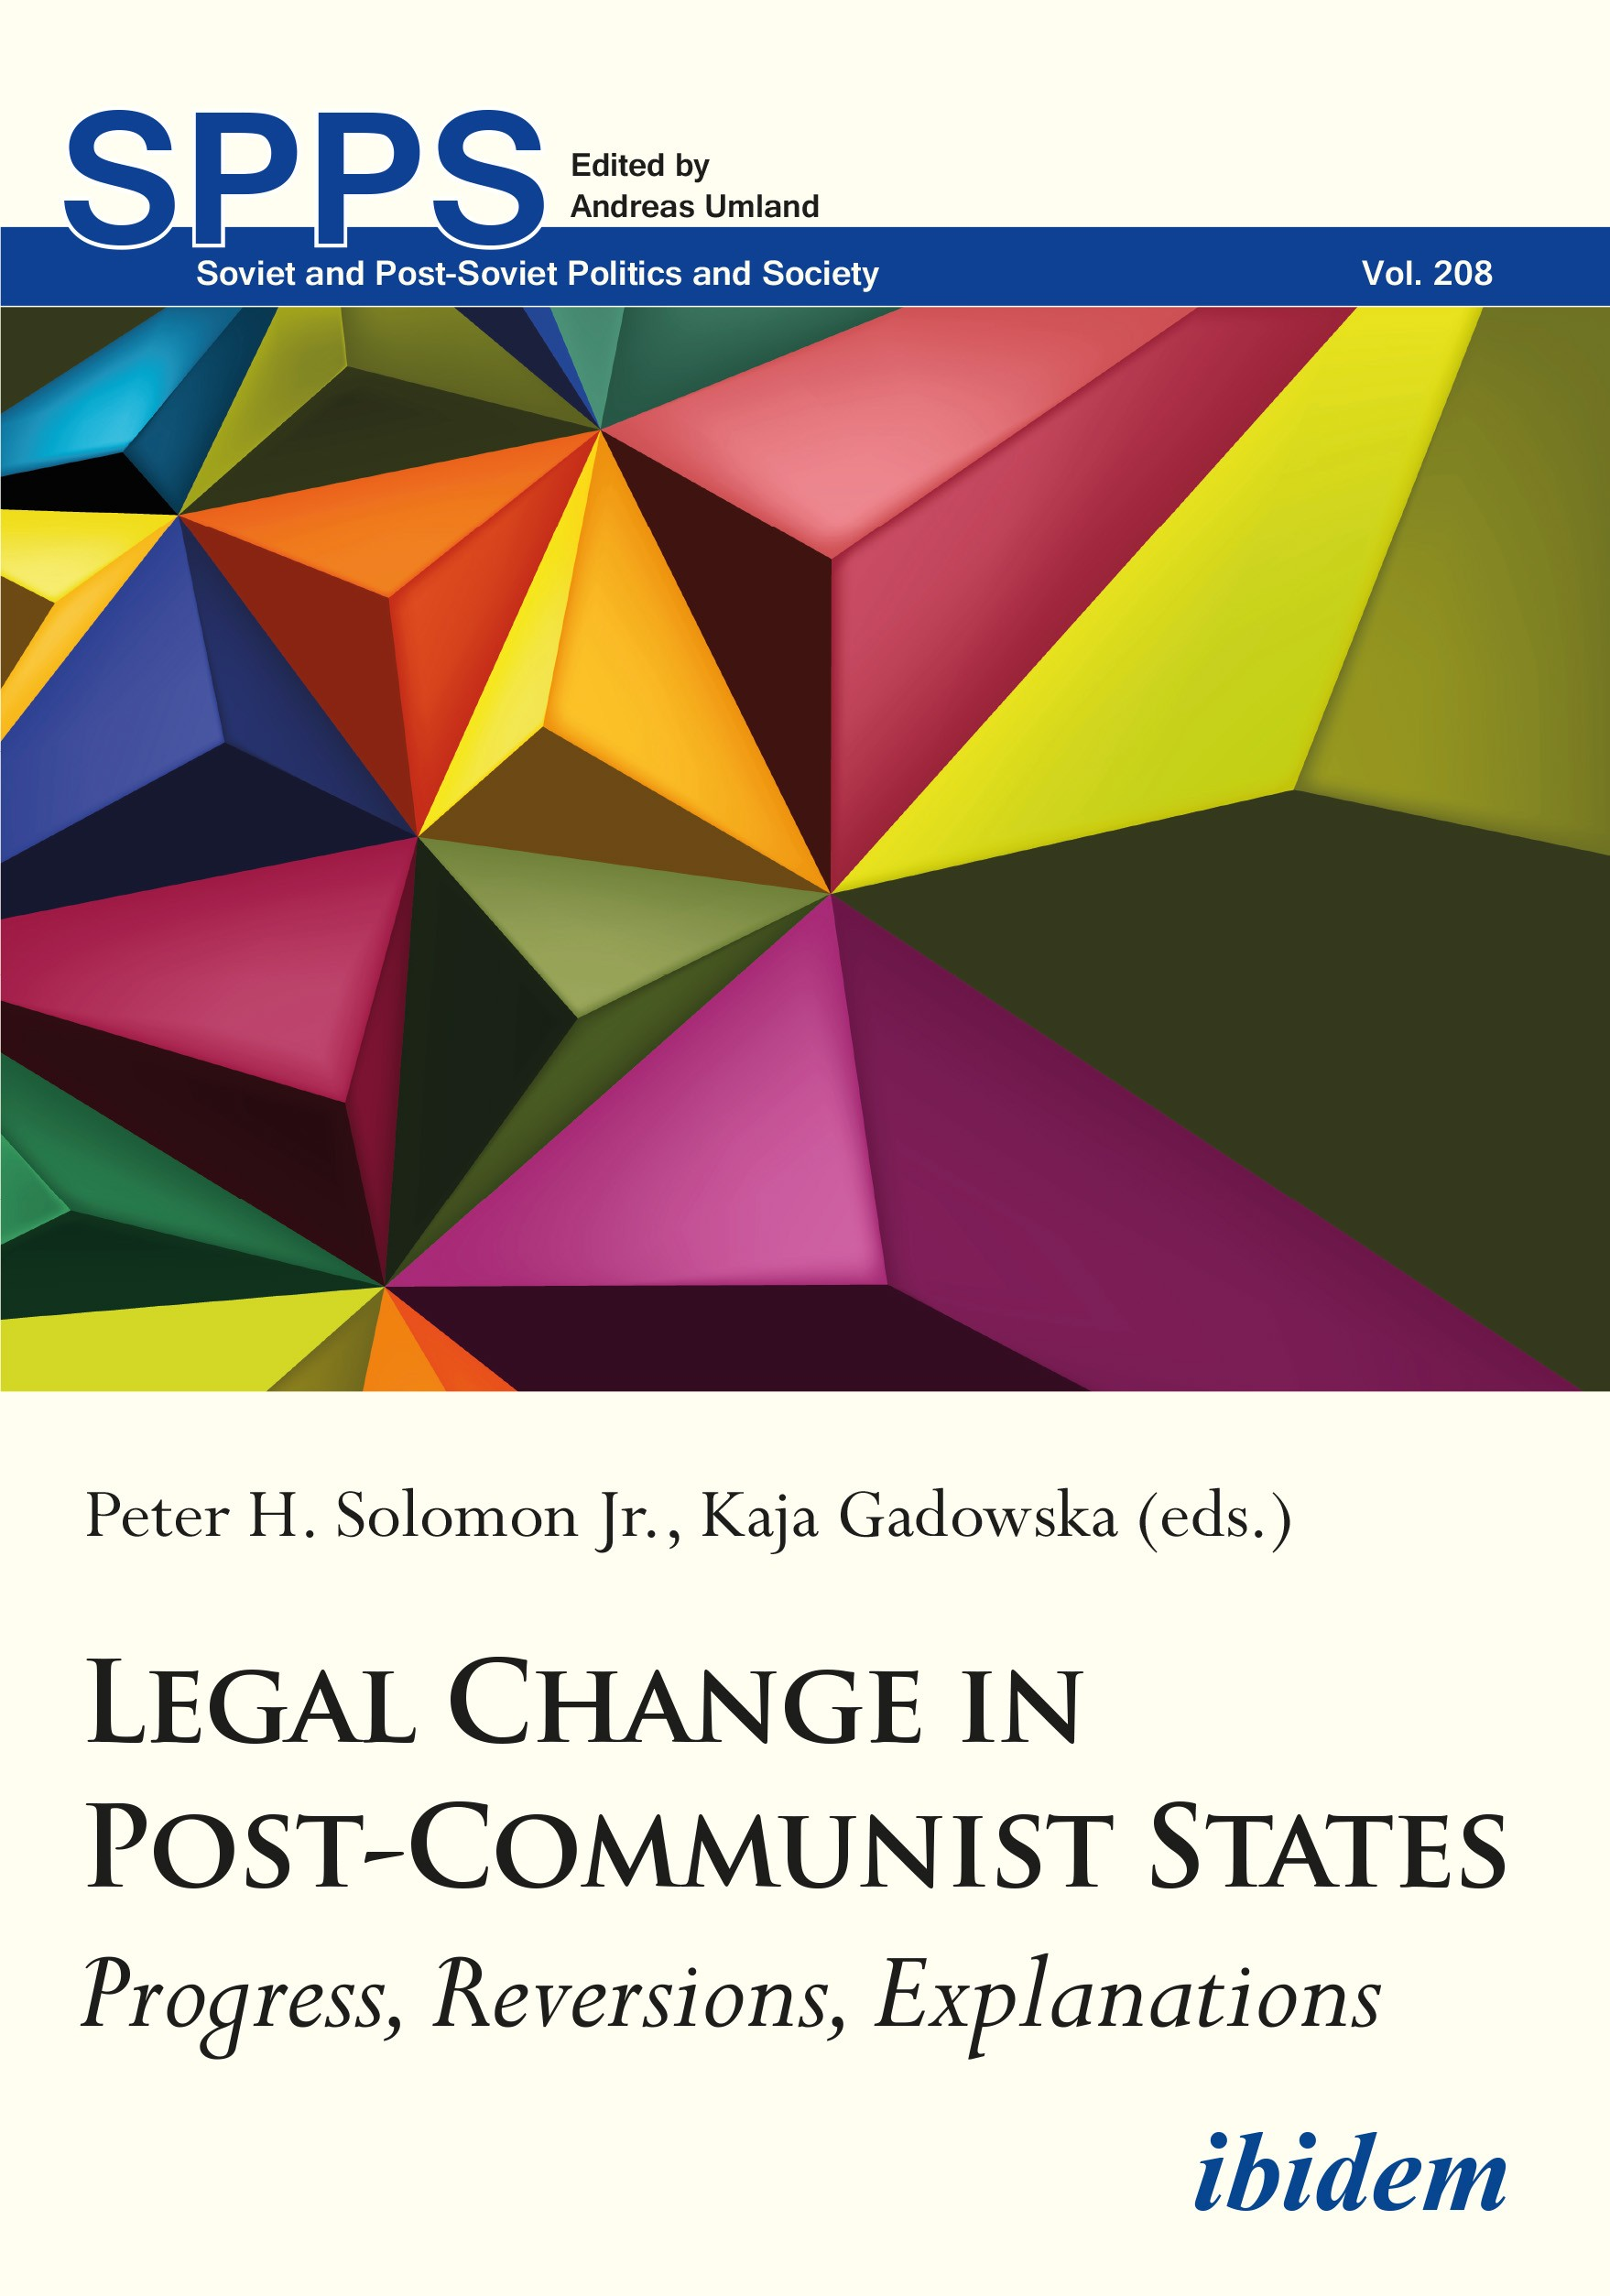 Legal Change in Post-Communist States